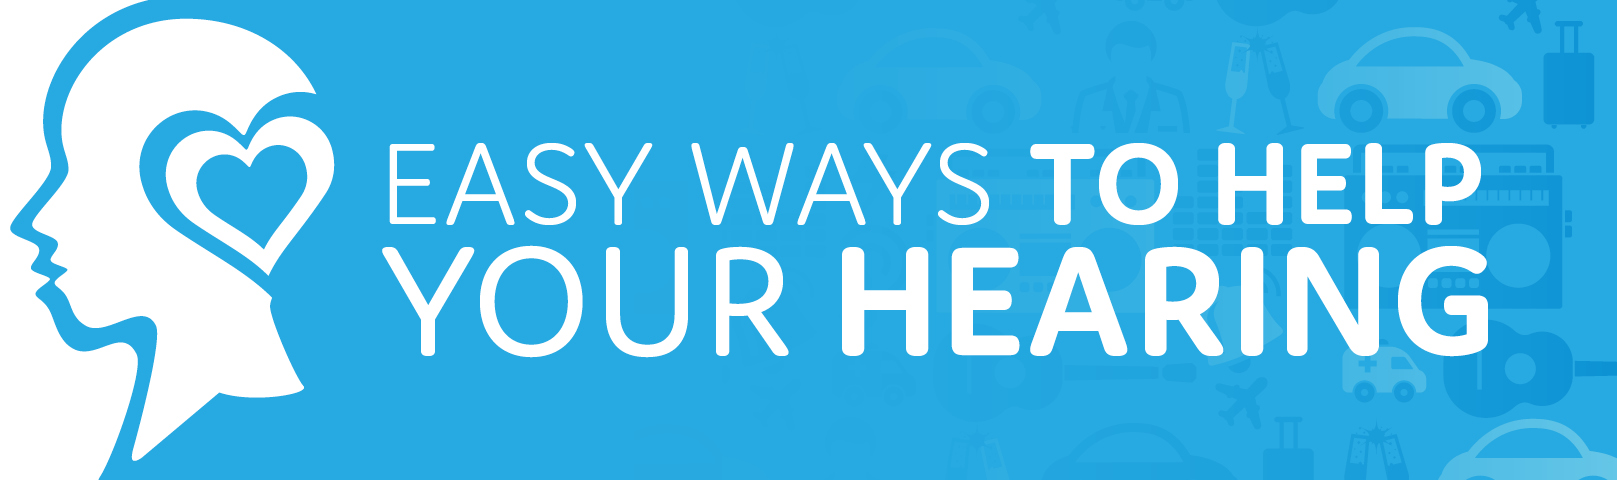 Easy Ways to Help Your Hearing